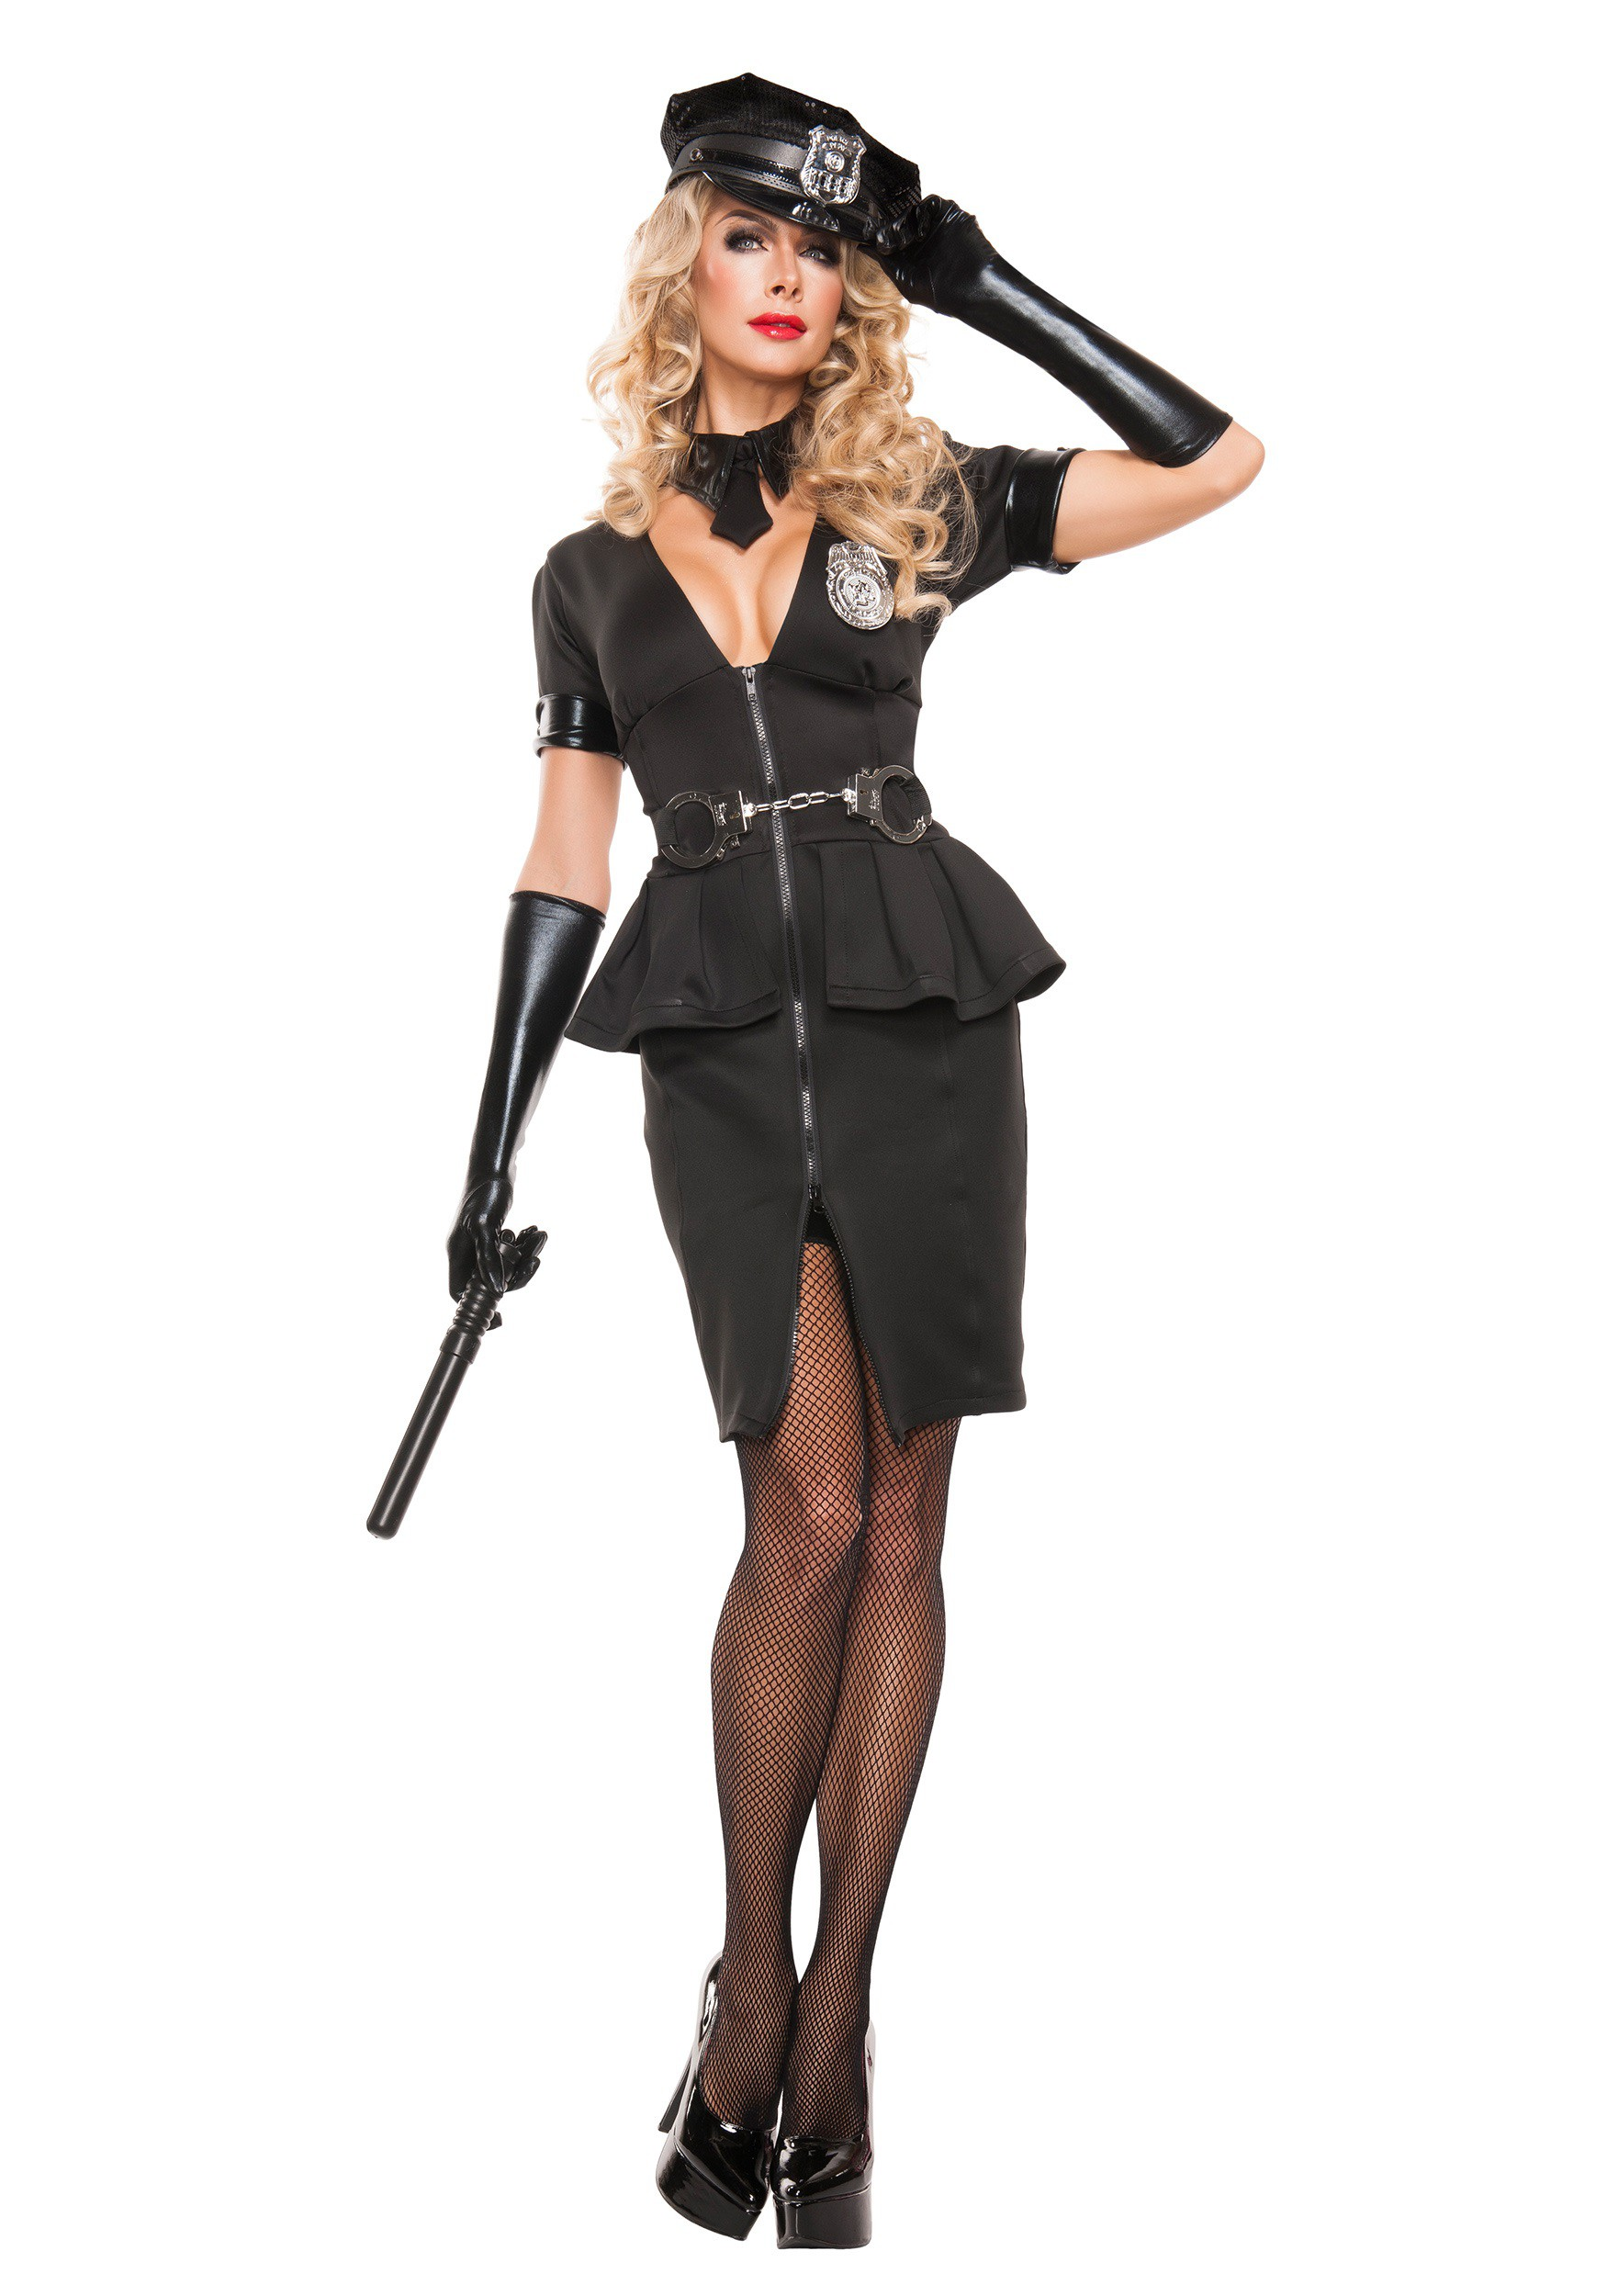 sc 1 st  Halloween Costumes : police costume for women  - Germanpascual.Com